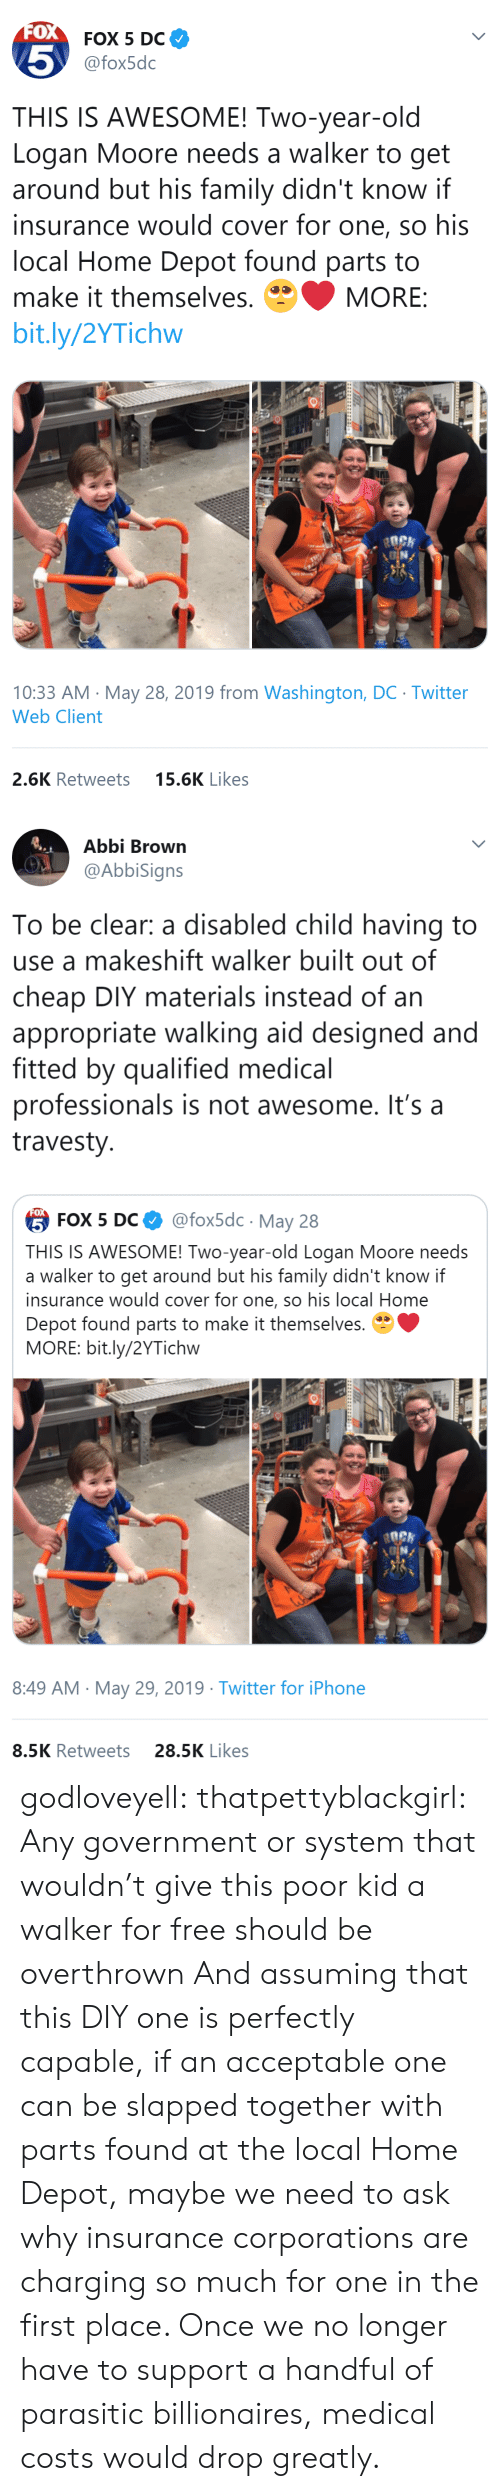 Cover: FOX  FOX 5 DC  5  @fox5dc  THIS IS AWESOME! Two-year-old  Logan Moore needs a walker to get  around but his family didn't know if  insurance would cover for one, so his  local Home Depot found parts to  make it themselves.  MORE:  bit.ly/2YTichw  10:33 AM May 28, 2019 from Washington, DC Twitter  Web Client  15.6K Likes  2.6K Retweets   Abbi Brown  @AbbiSigns  To be clear: a disabled child having to  use a makeshift walker built out of  cheap DIY materials instead of an  appropriate walking aid designed and  fitted by qualified medical  professionals is not awesome. It's a  travesty  FOX  @fox5dc May 28  5 FOX 5 DС  THIS IS AWESOME! Two-year-old Logan Moore needs  a walker to get around but his family didn't know if  insurance would cover for one, so his local Home  Depot found parts to make it themselves.  MORE: bit.ly/2YTichw  8:49 AM May 29, 2019 Twitter for iPhone  28.5K Likes  8.5K Retweets godloveyell:  thatpettyblackgirl:  Any government or system that wouldn't give this poor kid a walker for free should be overthrown   And assuming that this DIY one is perfectly capable, if an acceptable one can be slapped together with parts found at the local Home Depot, maybe we need to ask why insurance corporations are charging so much for one in the first place.  Once we no longer have to support a handful of parasitic billionaires, medical costs would drop greatly.